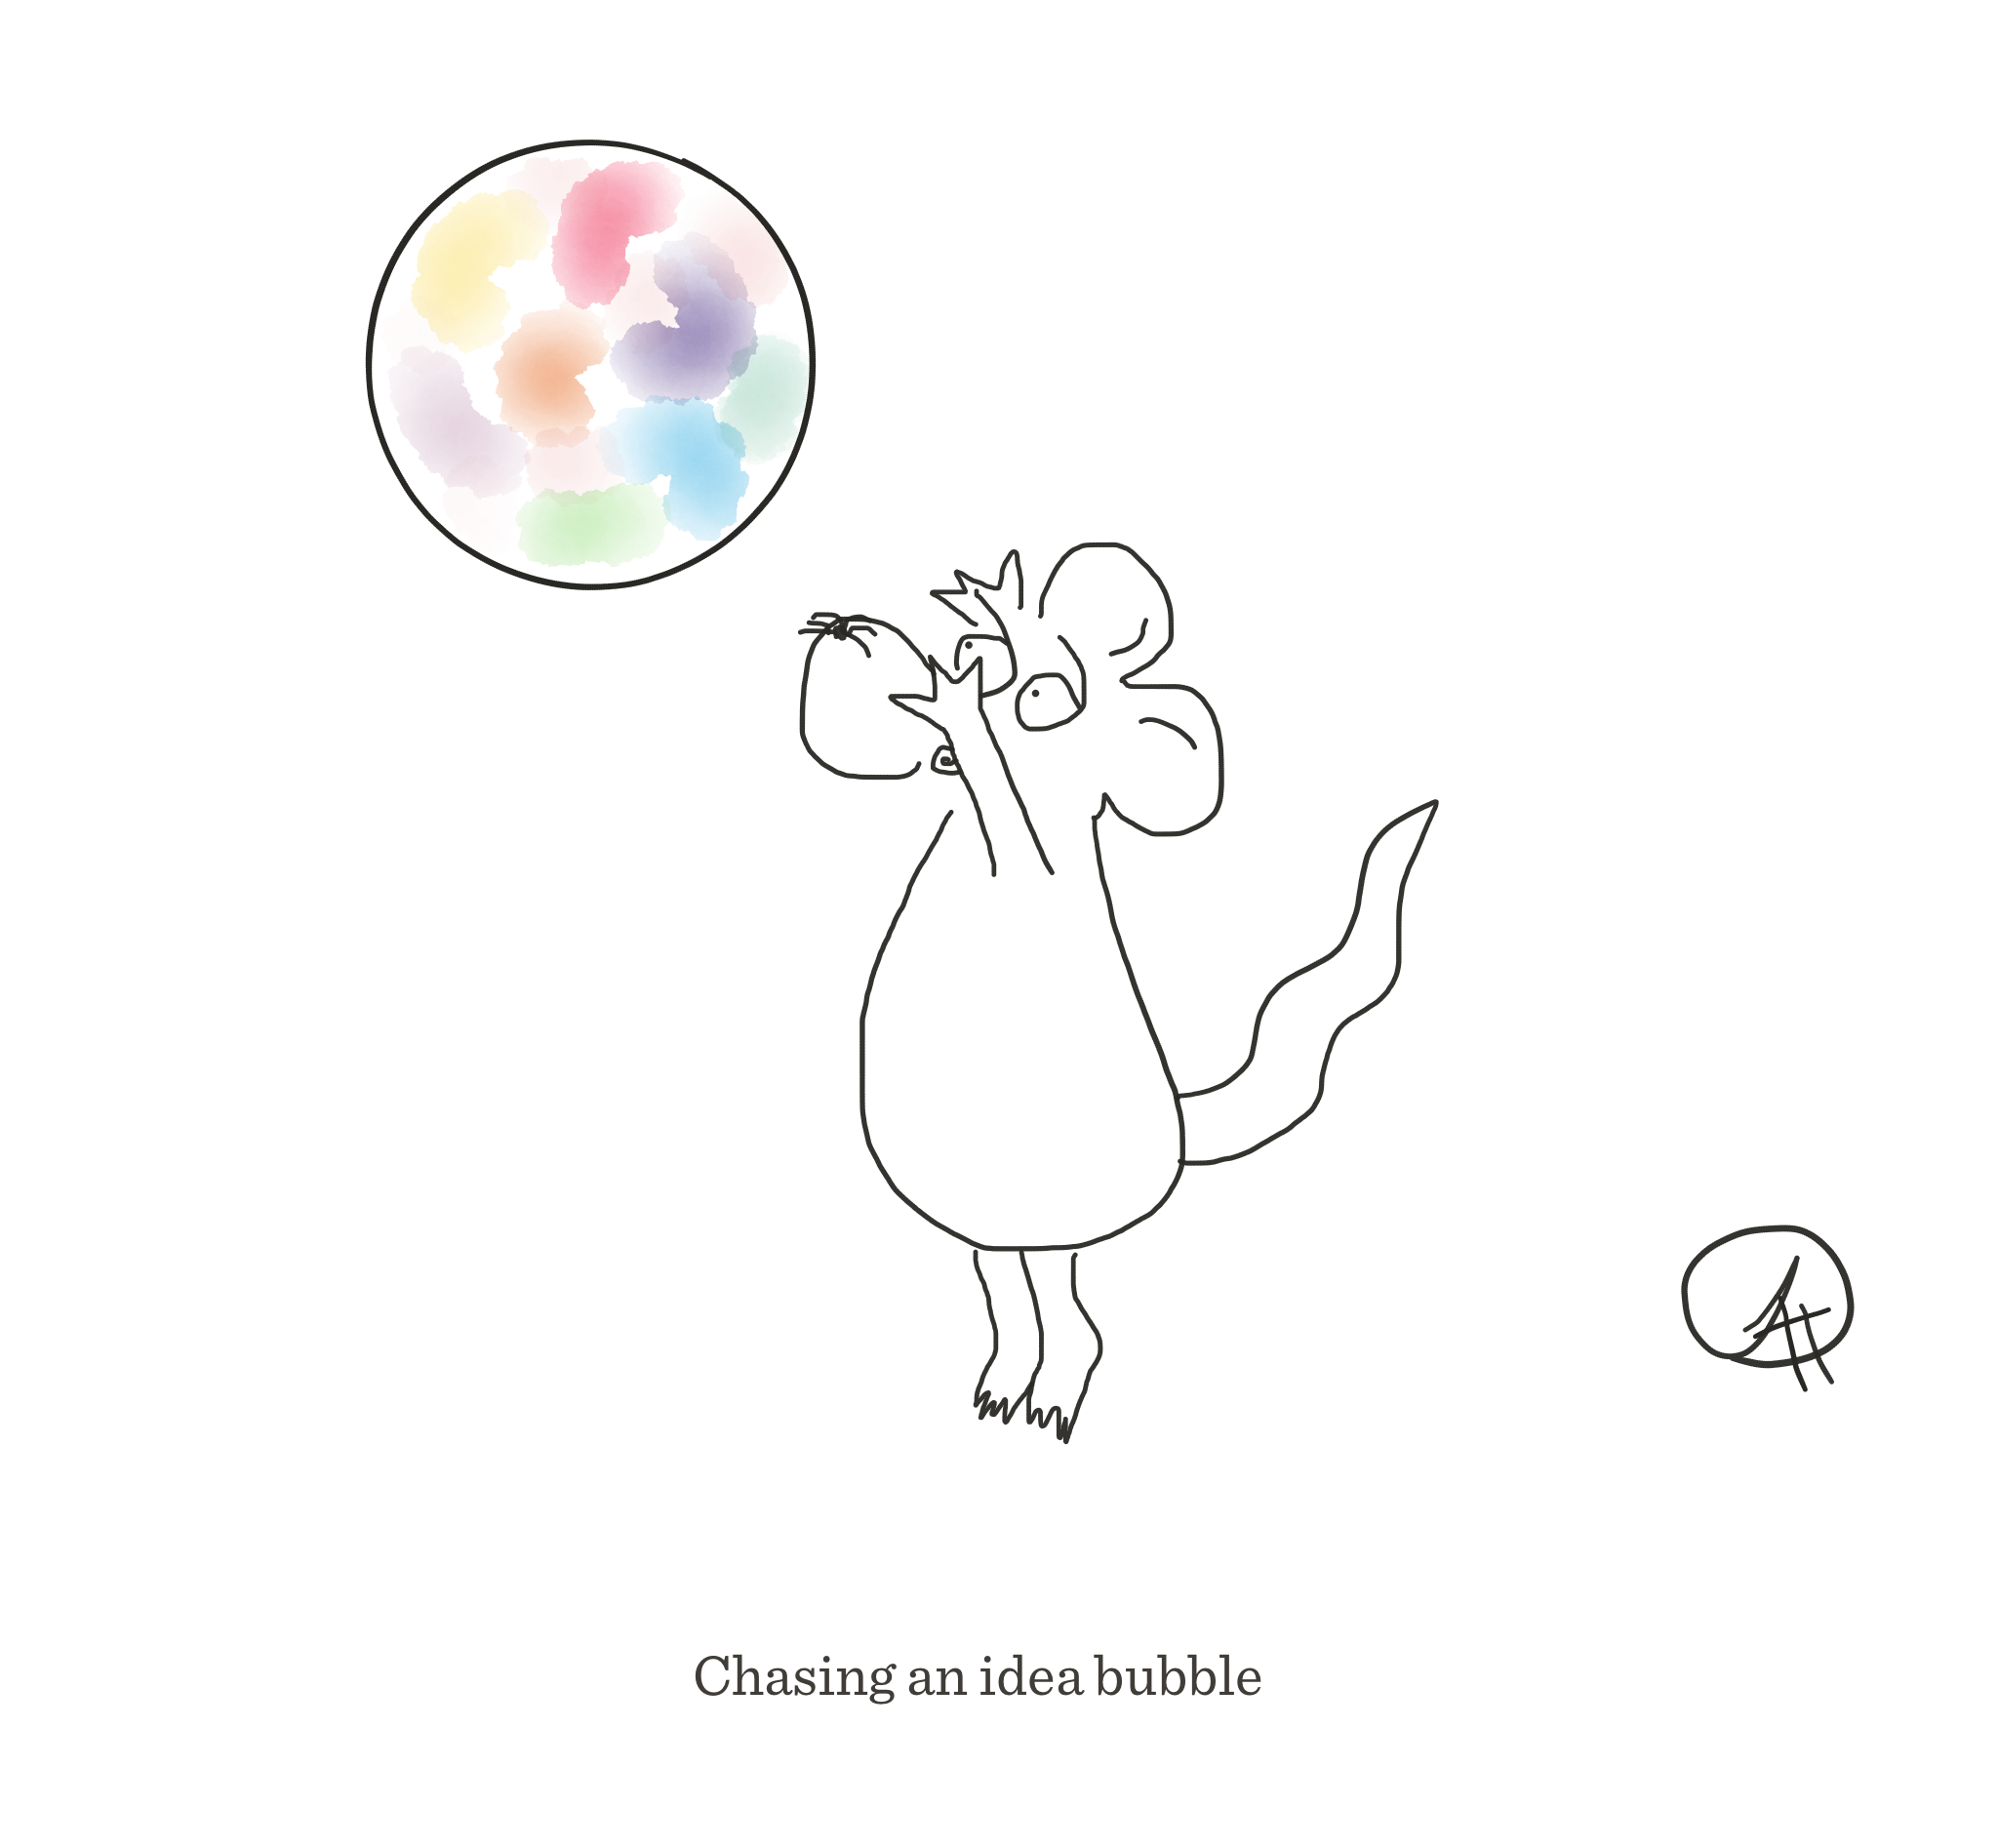 Chasing an idea bubble, The Happy Rat cartoon